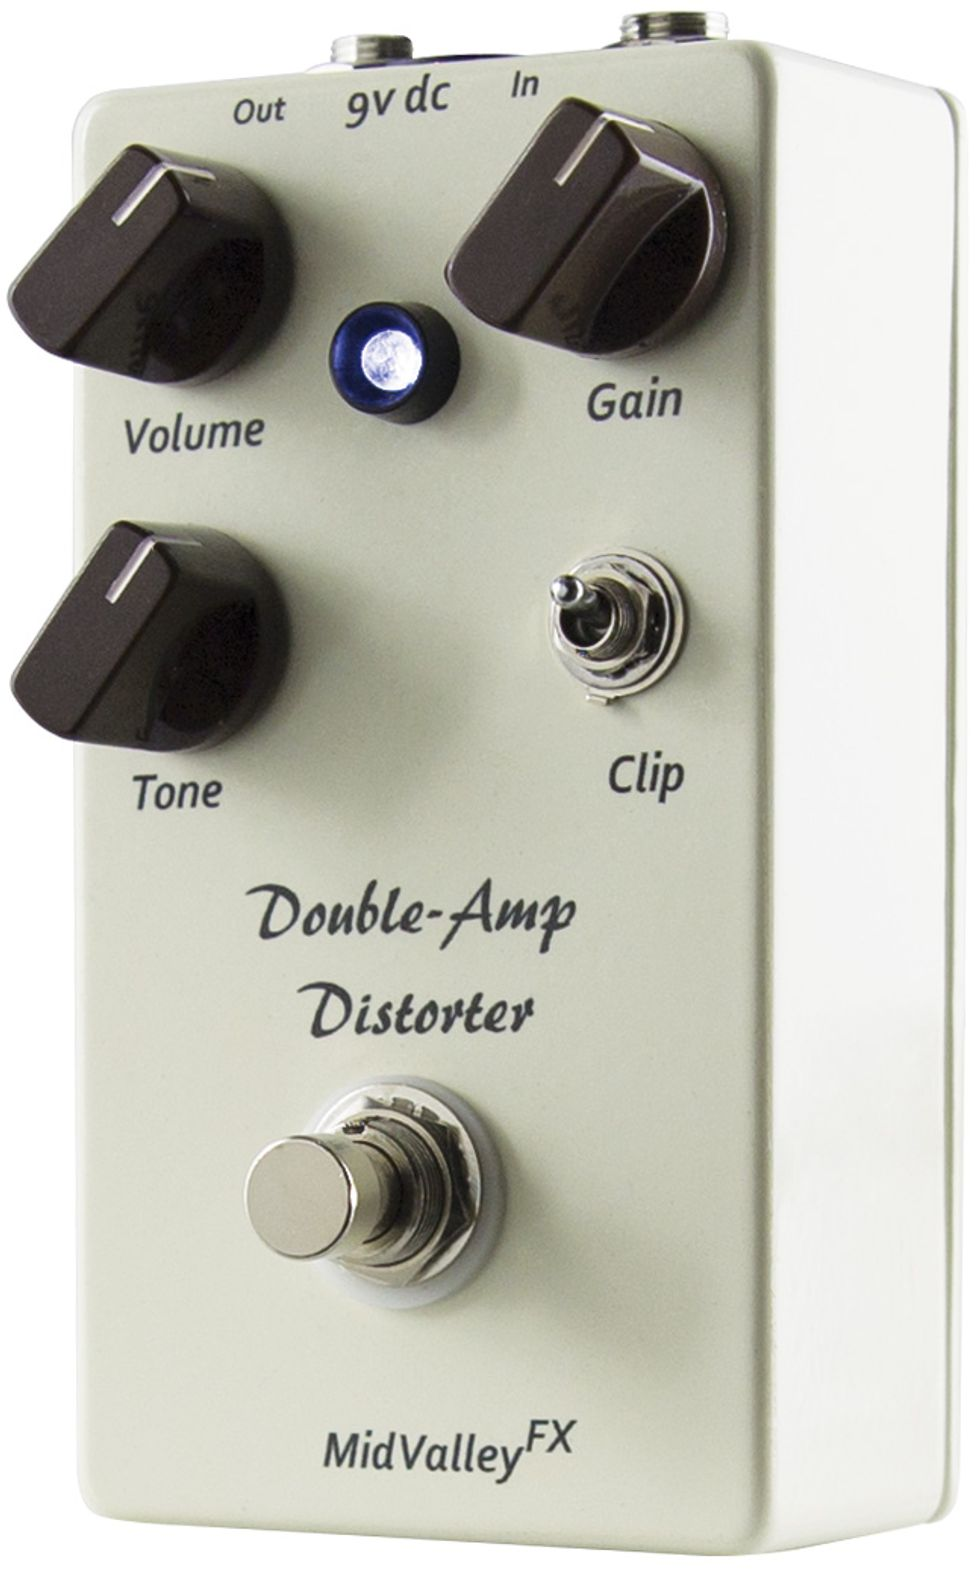 MidValleyFx Double-Amp Distorter Review